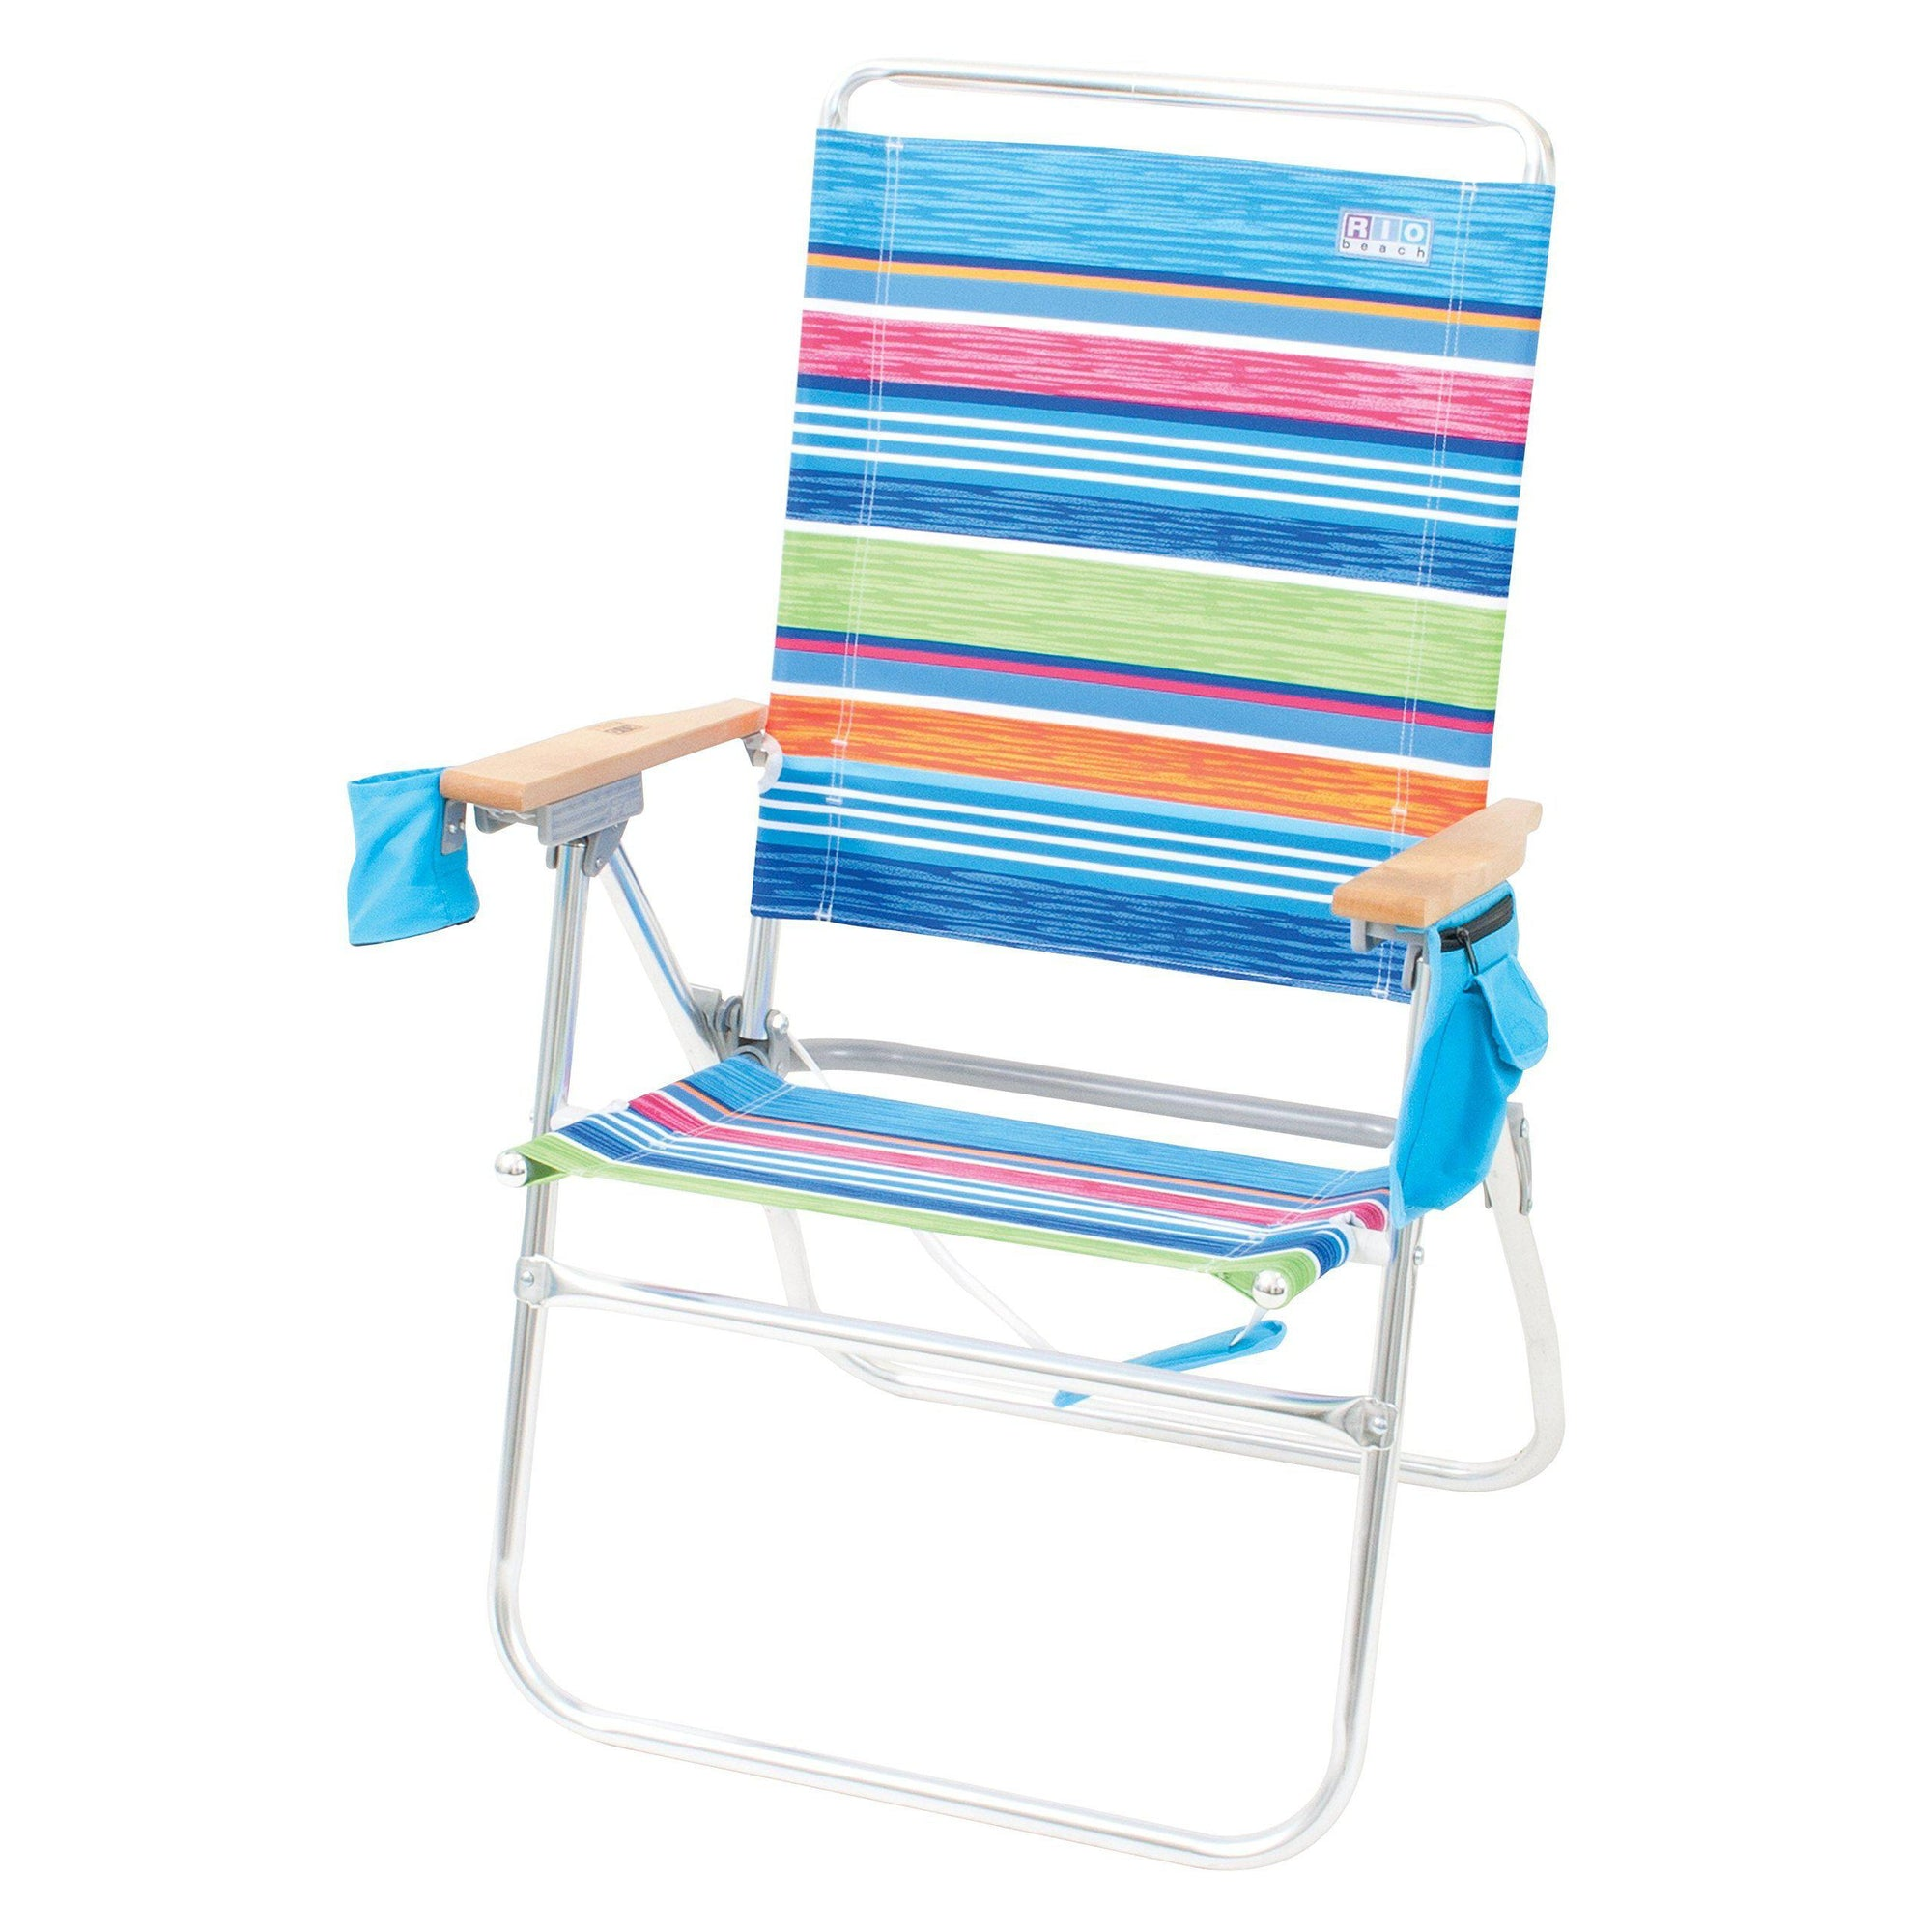 Rio Beach Hi-Boy High Seat 17 Folding Beach Chair